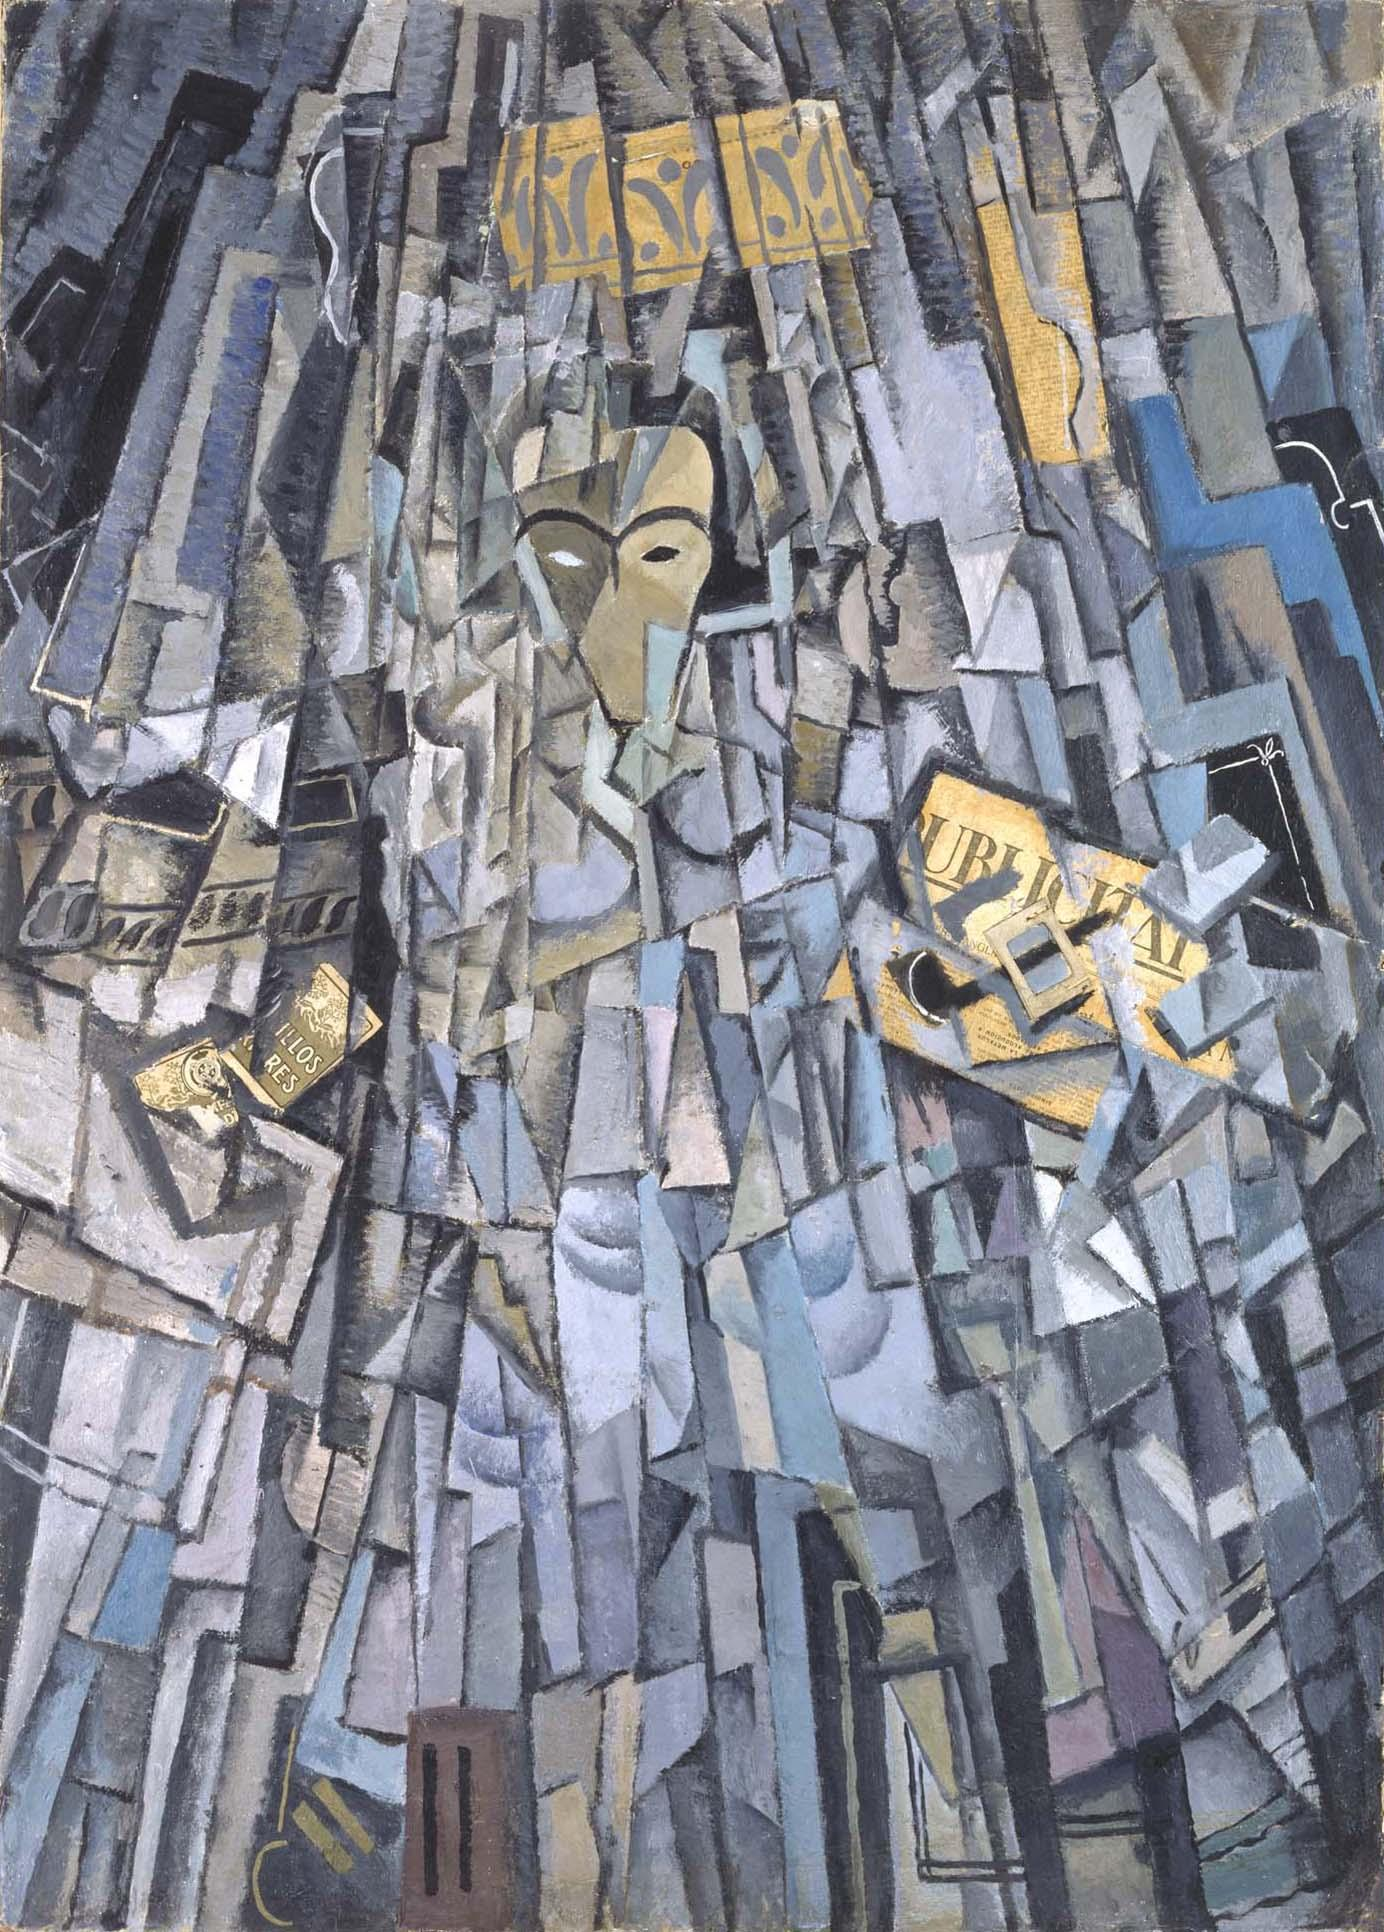 Cubist Self-Portrait, 1923 — Salvador Dalí